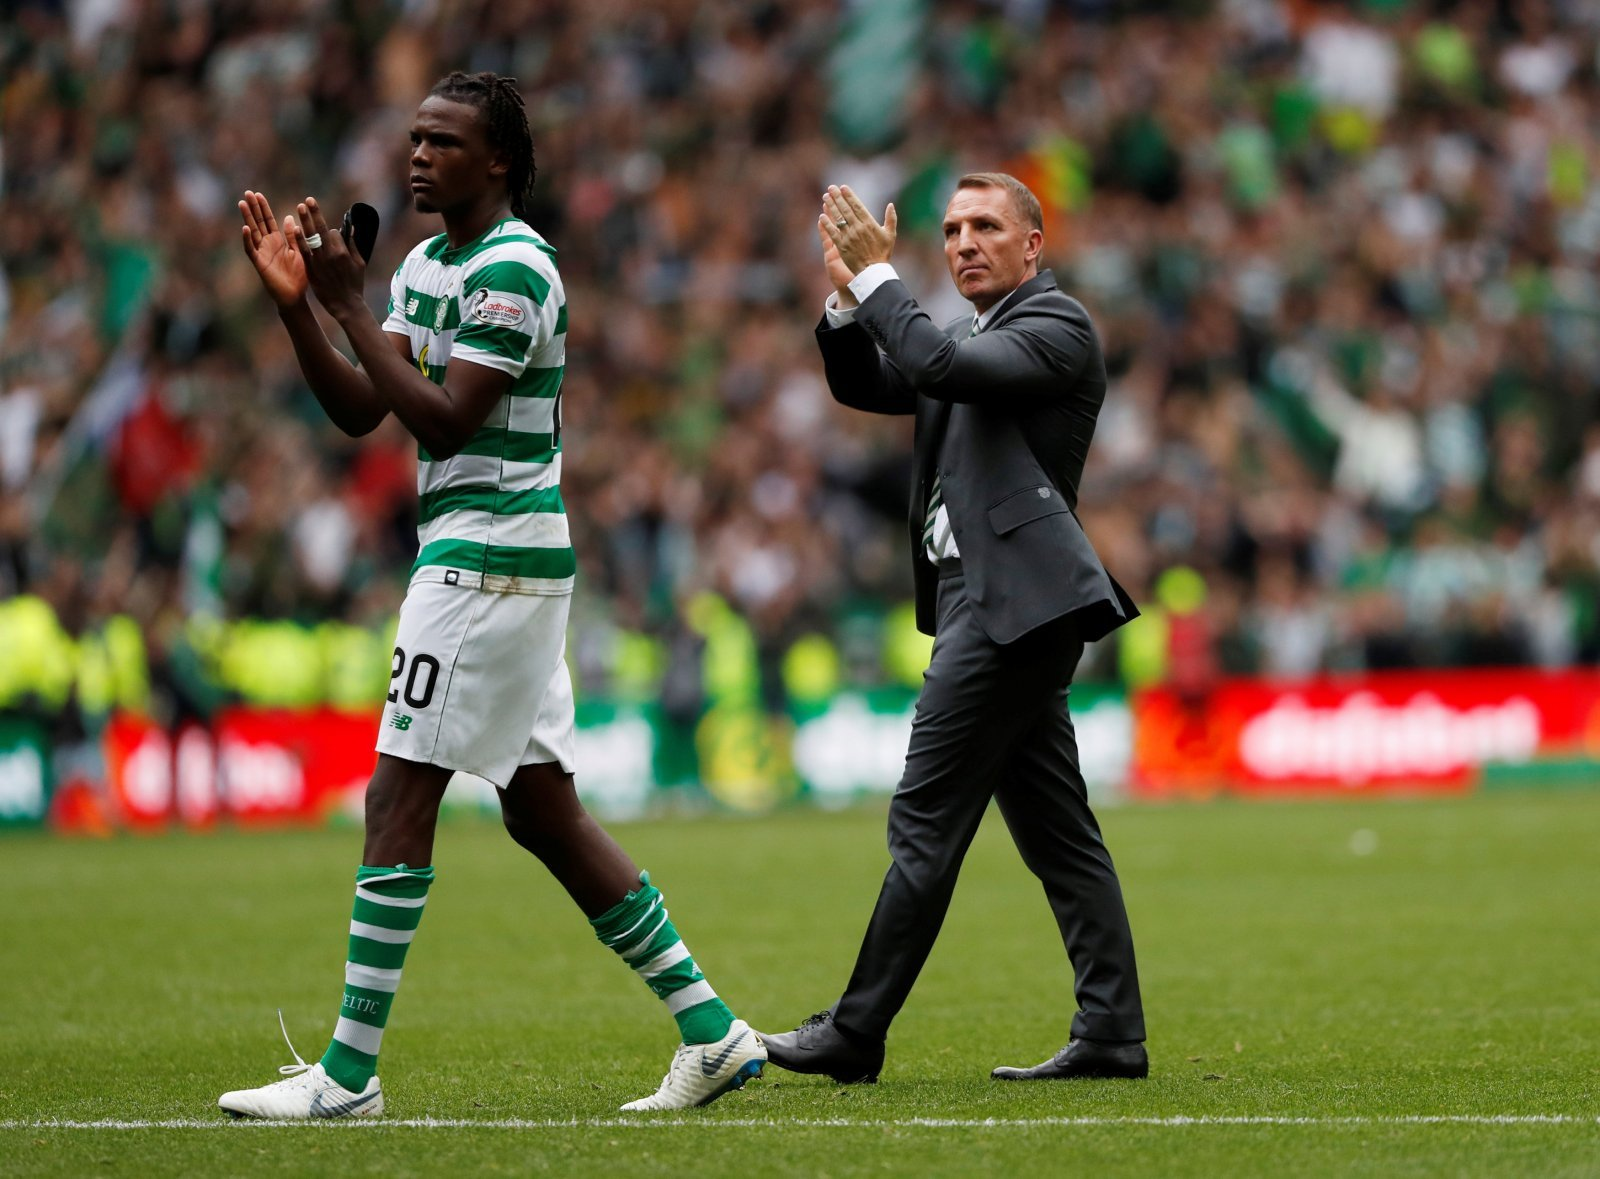 Celtic stay could still be on the cards for Boyata after Rodgers' recent comments